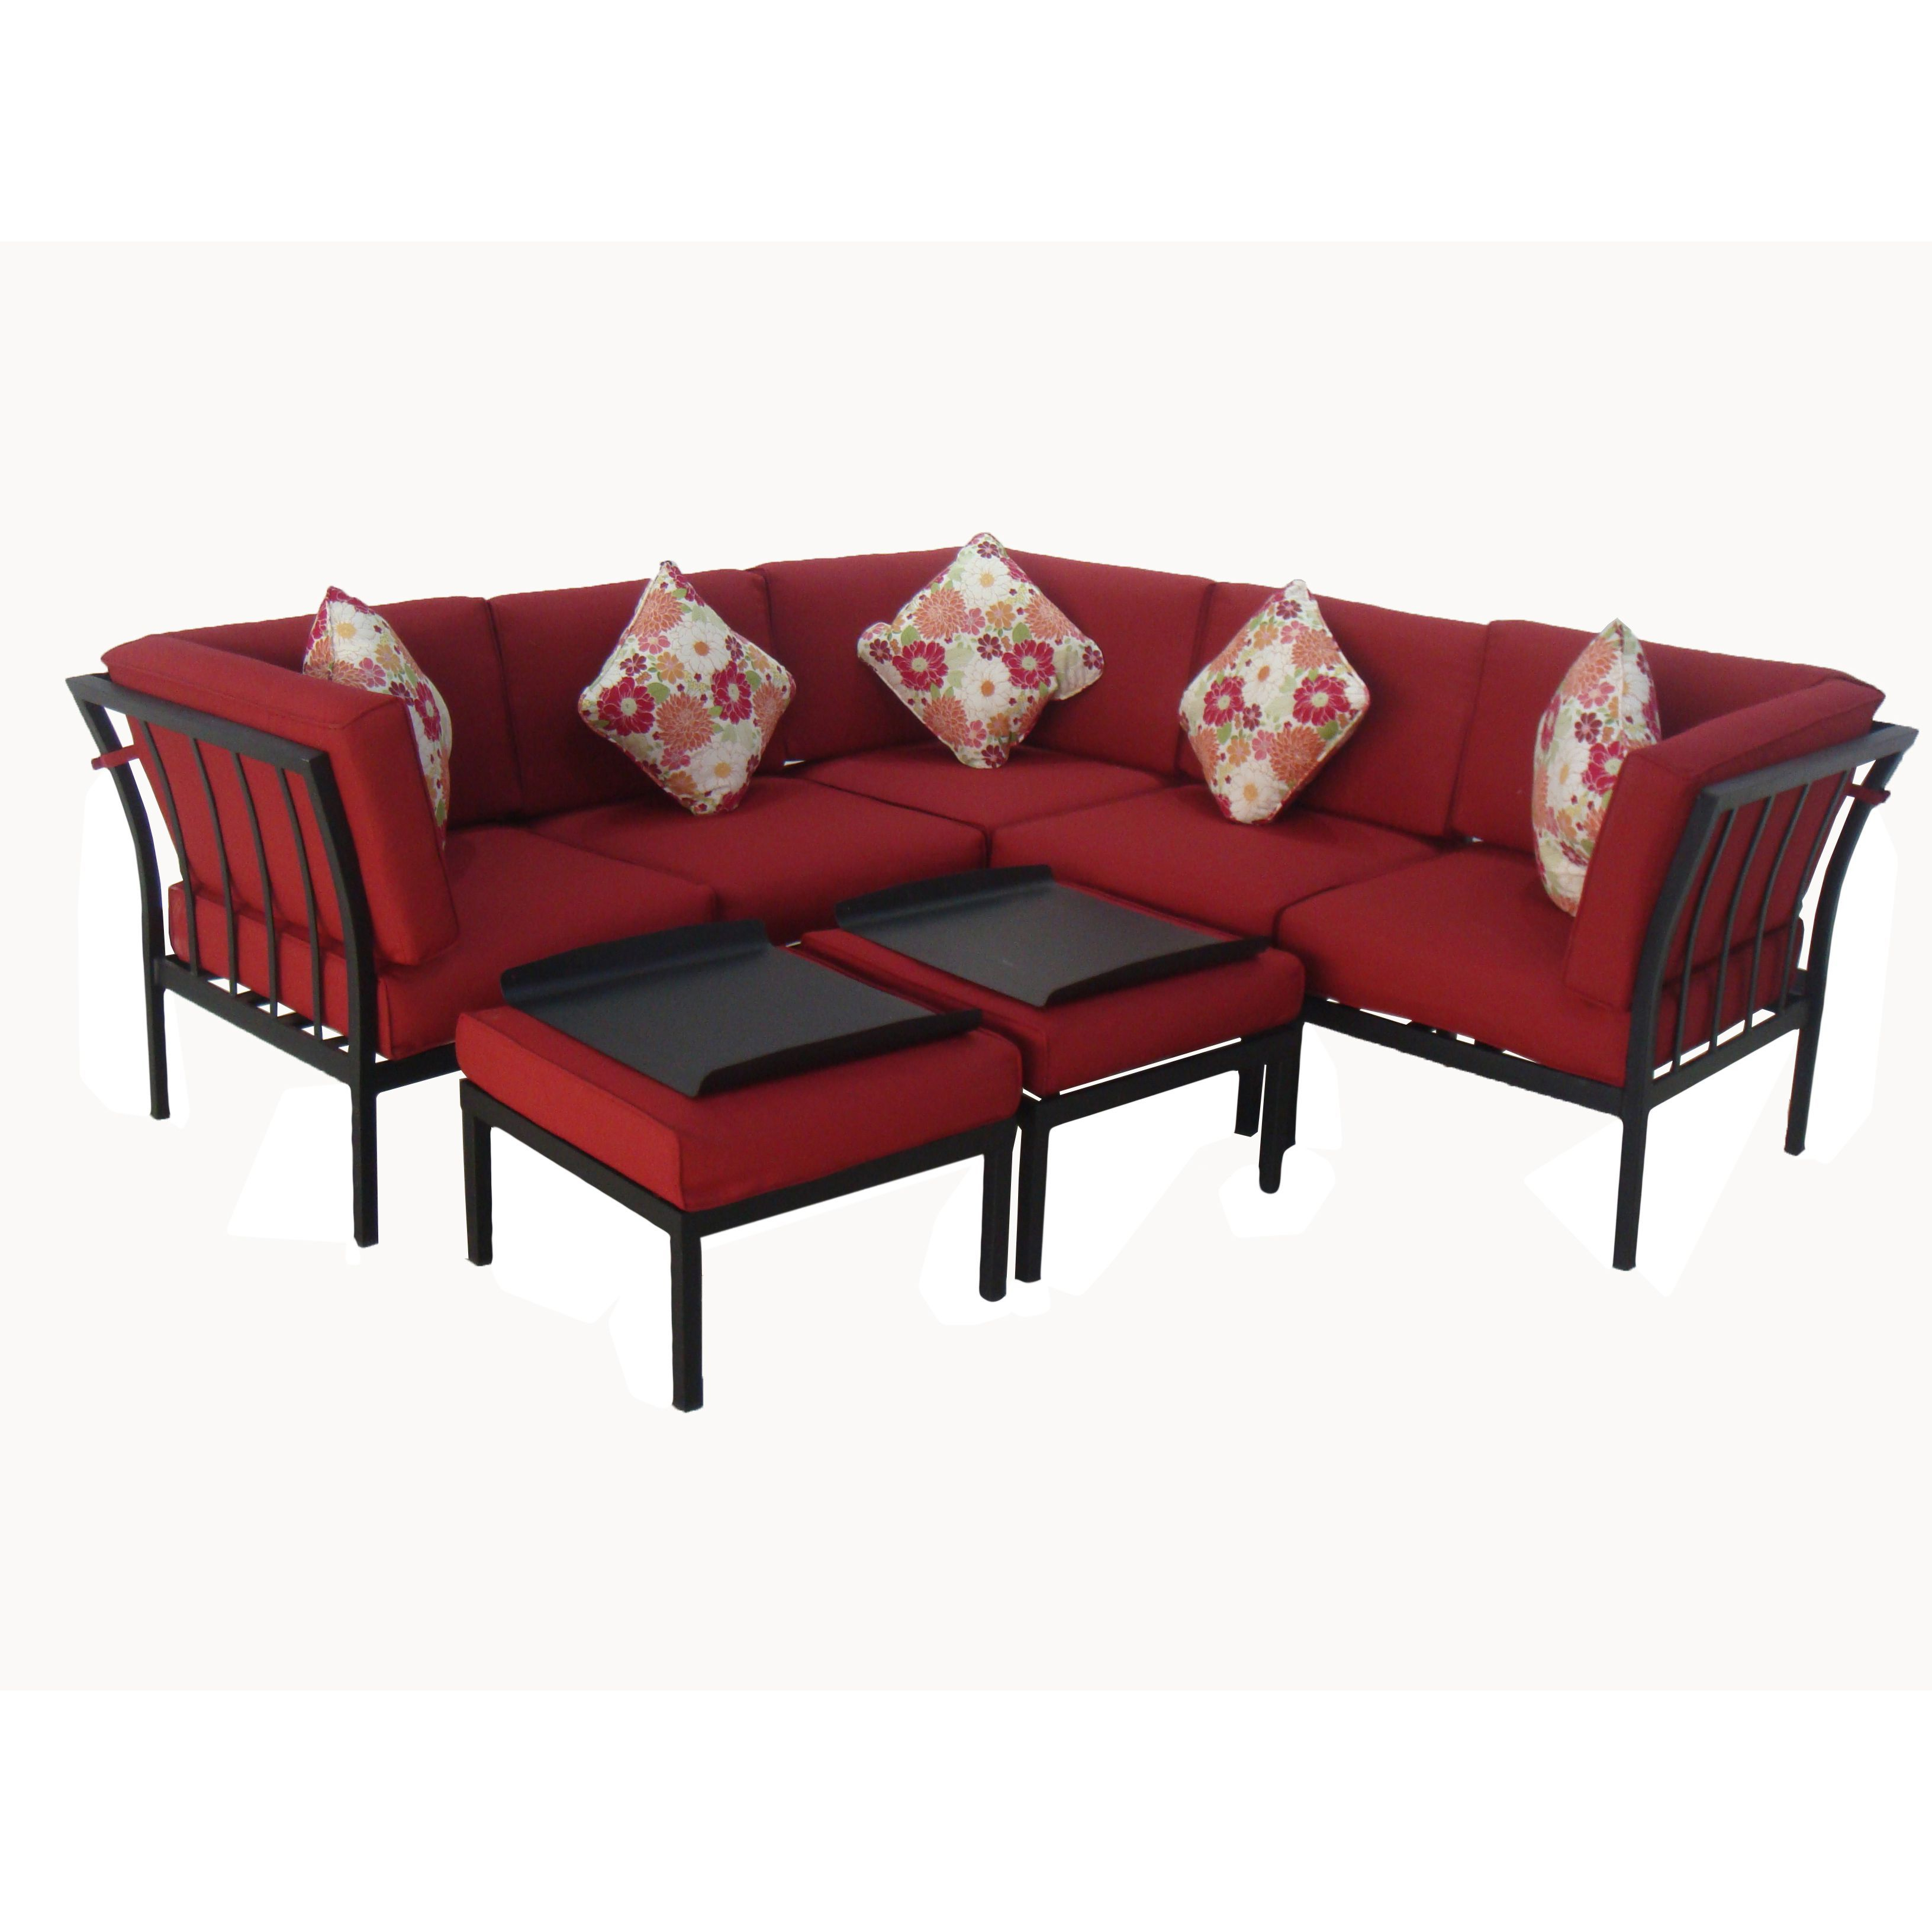 Practical And Multifunctional, This Modular Set Is Perfect With Regard To Preferred Greta Living Patio Sectionals With Cushions (View 16 of 20)